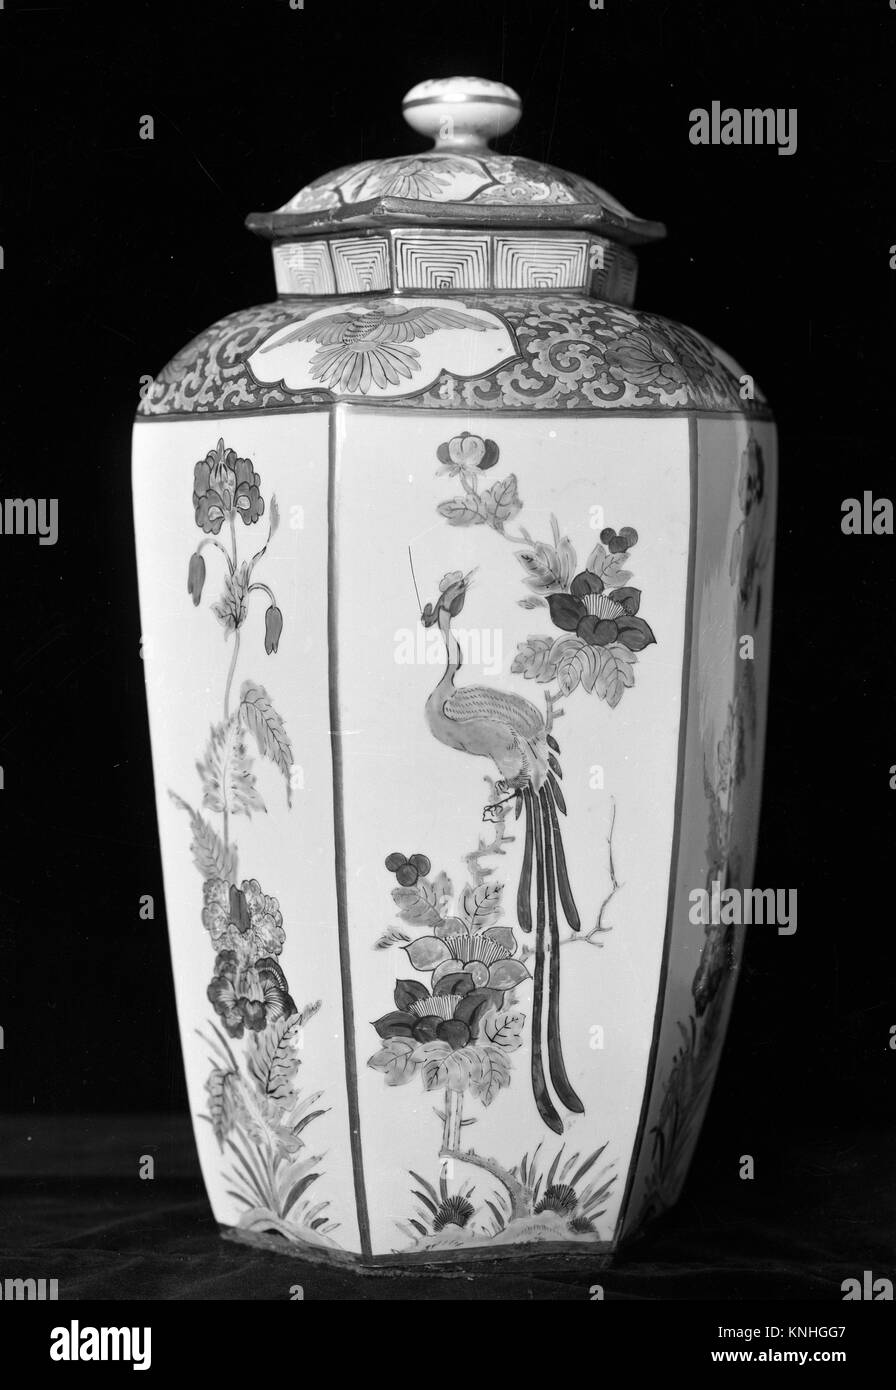 Vase. Factory: Chelsea Porcelain Manufactory (British, 1745-1784, Red Anchor Period, ca. 1753-58); Date: ca. 1755; - Stock Image